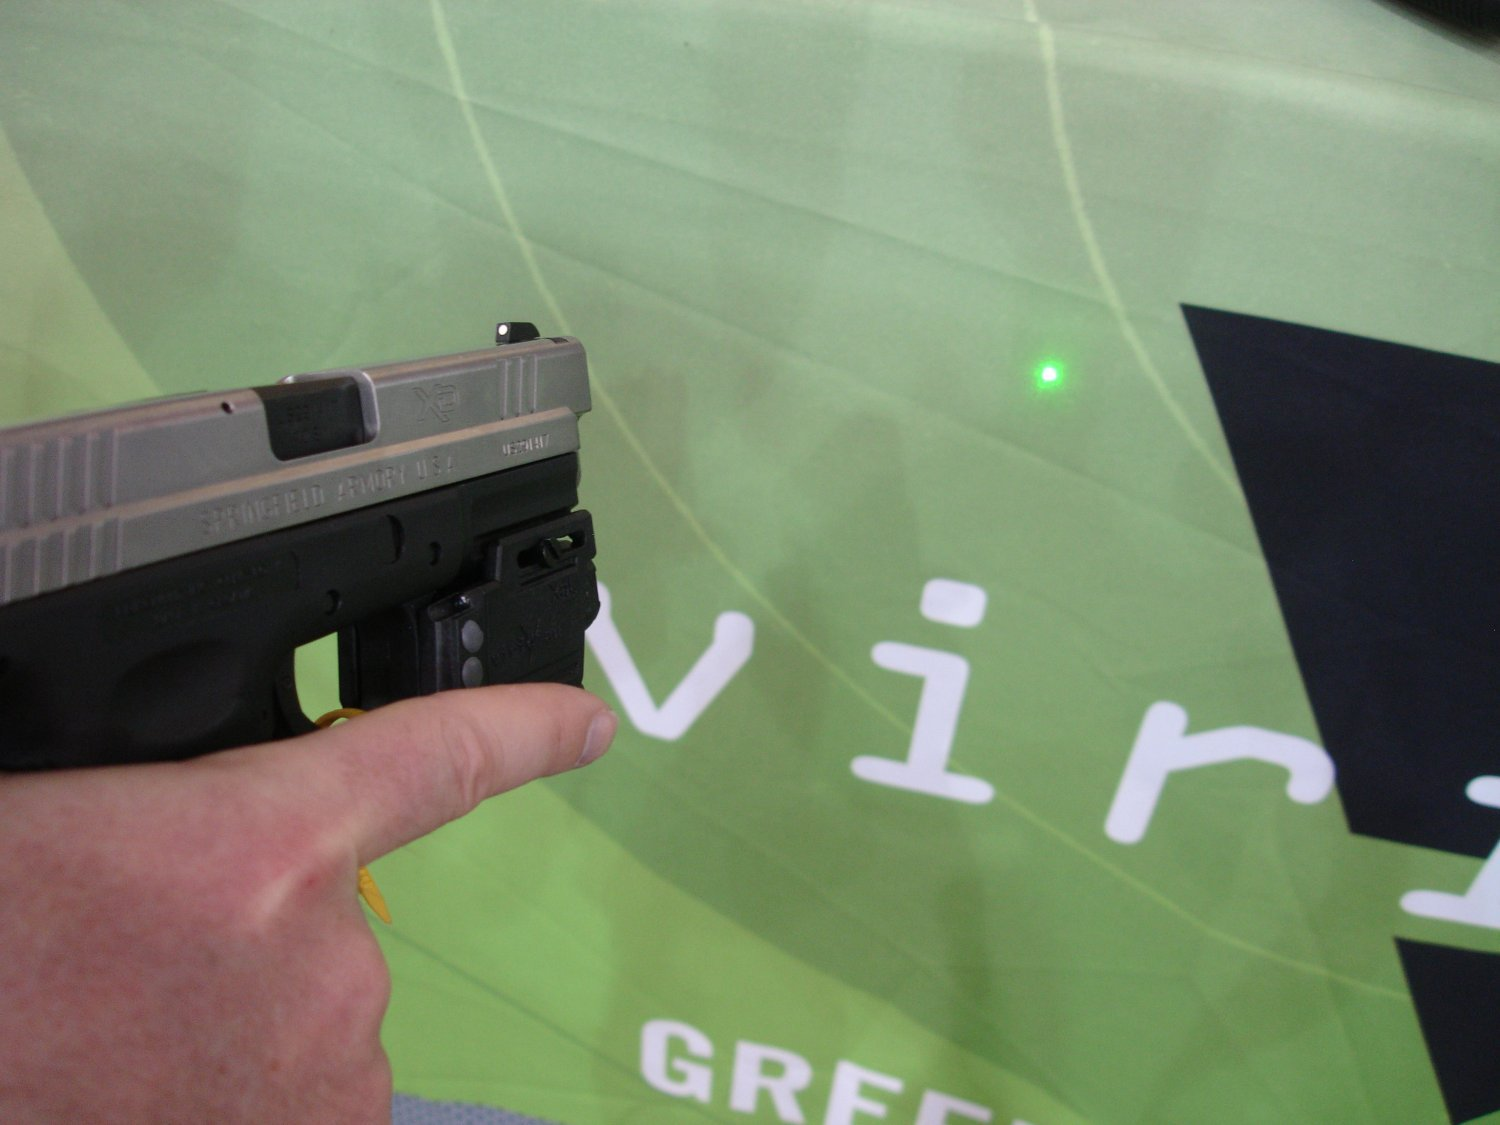 ViridianGreenLaserSights ShotShow2008 6 <!  :en  >Viridian Green Laser Sights for Tactical Weapons: Green Beats Red<!  :  >